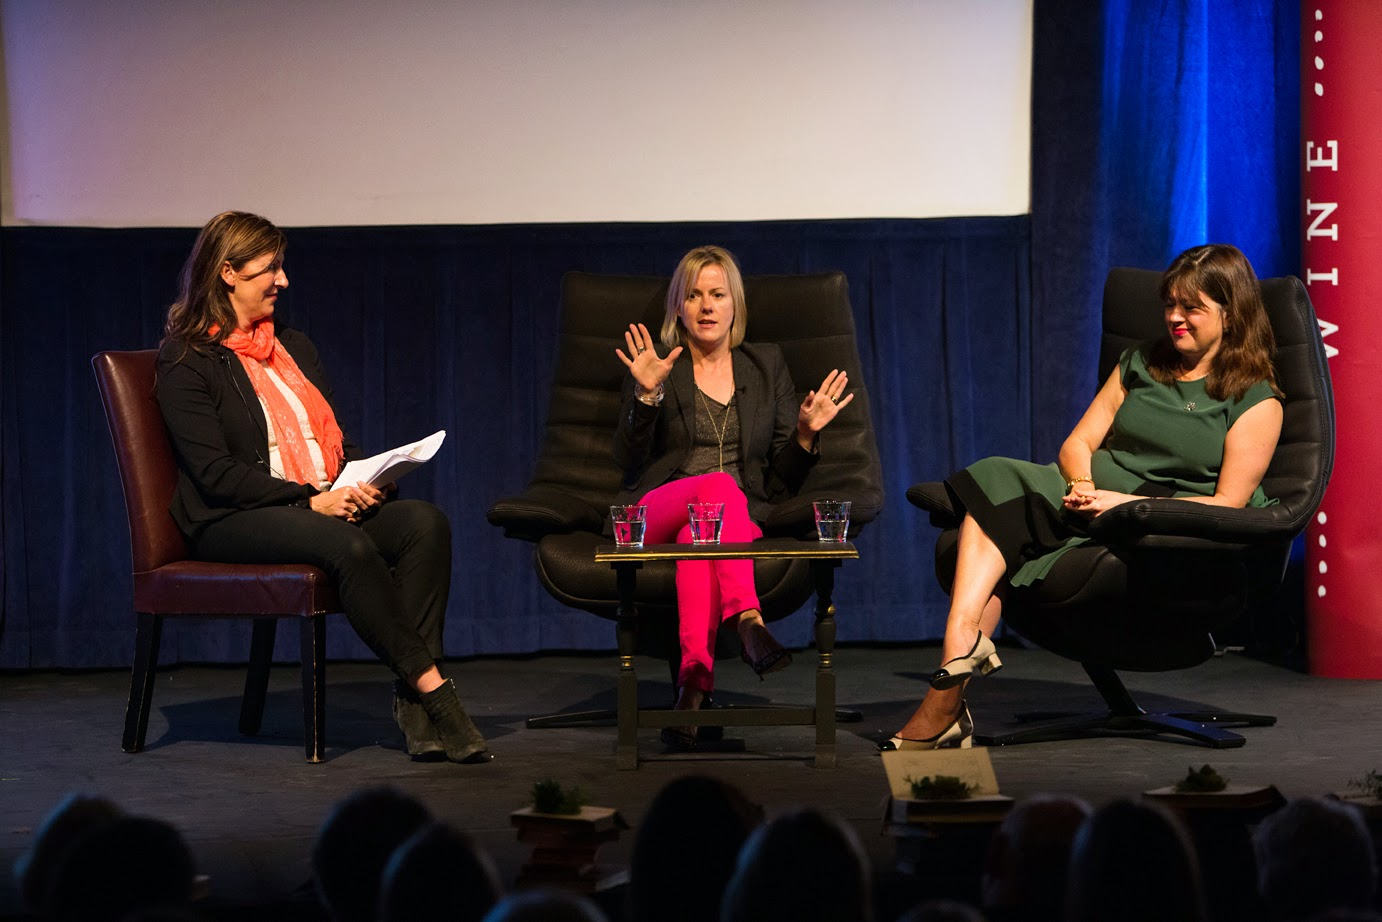 Lucy Cavendish interviews Jojo Moyes and Daisy Goodwin at the Henley Literary Festival